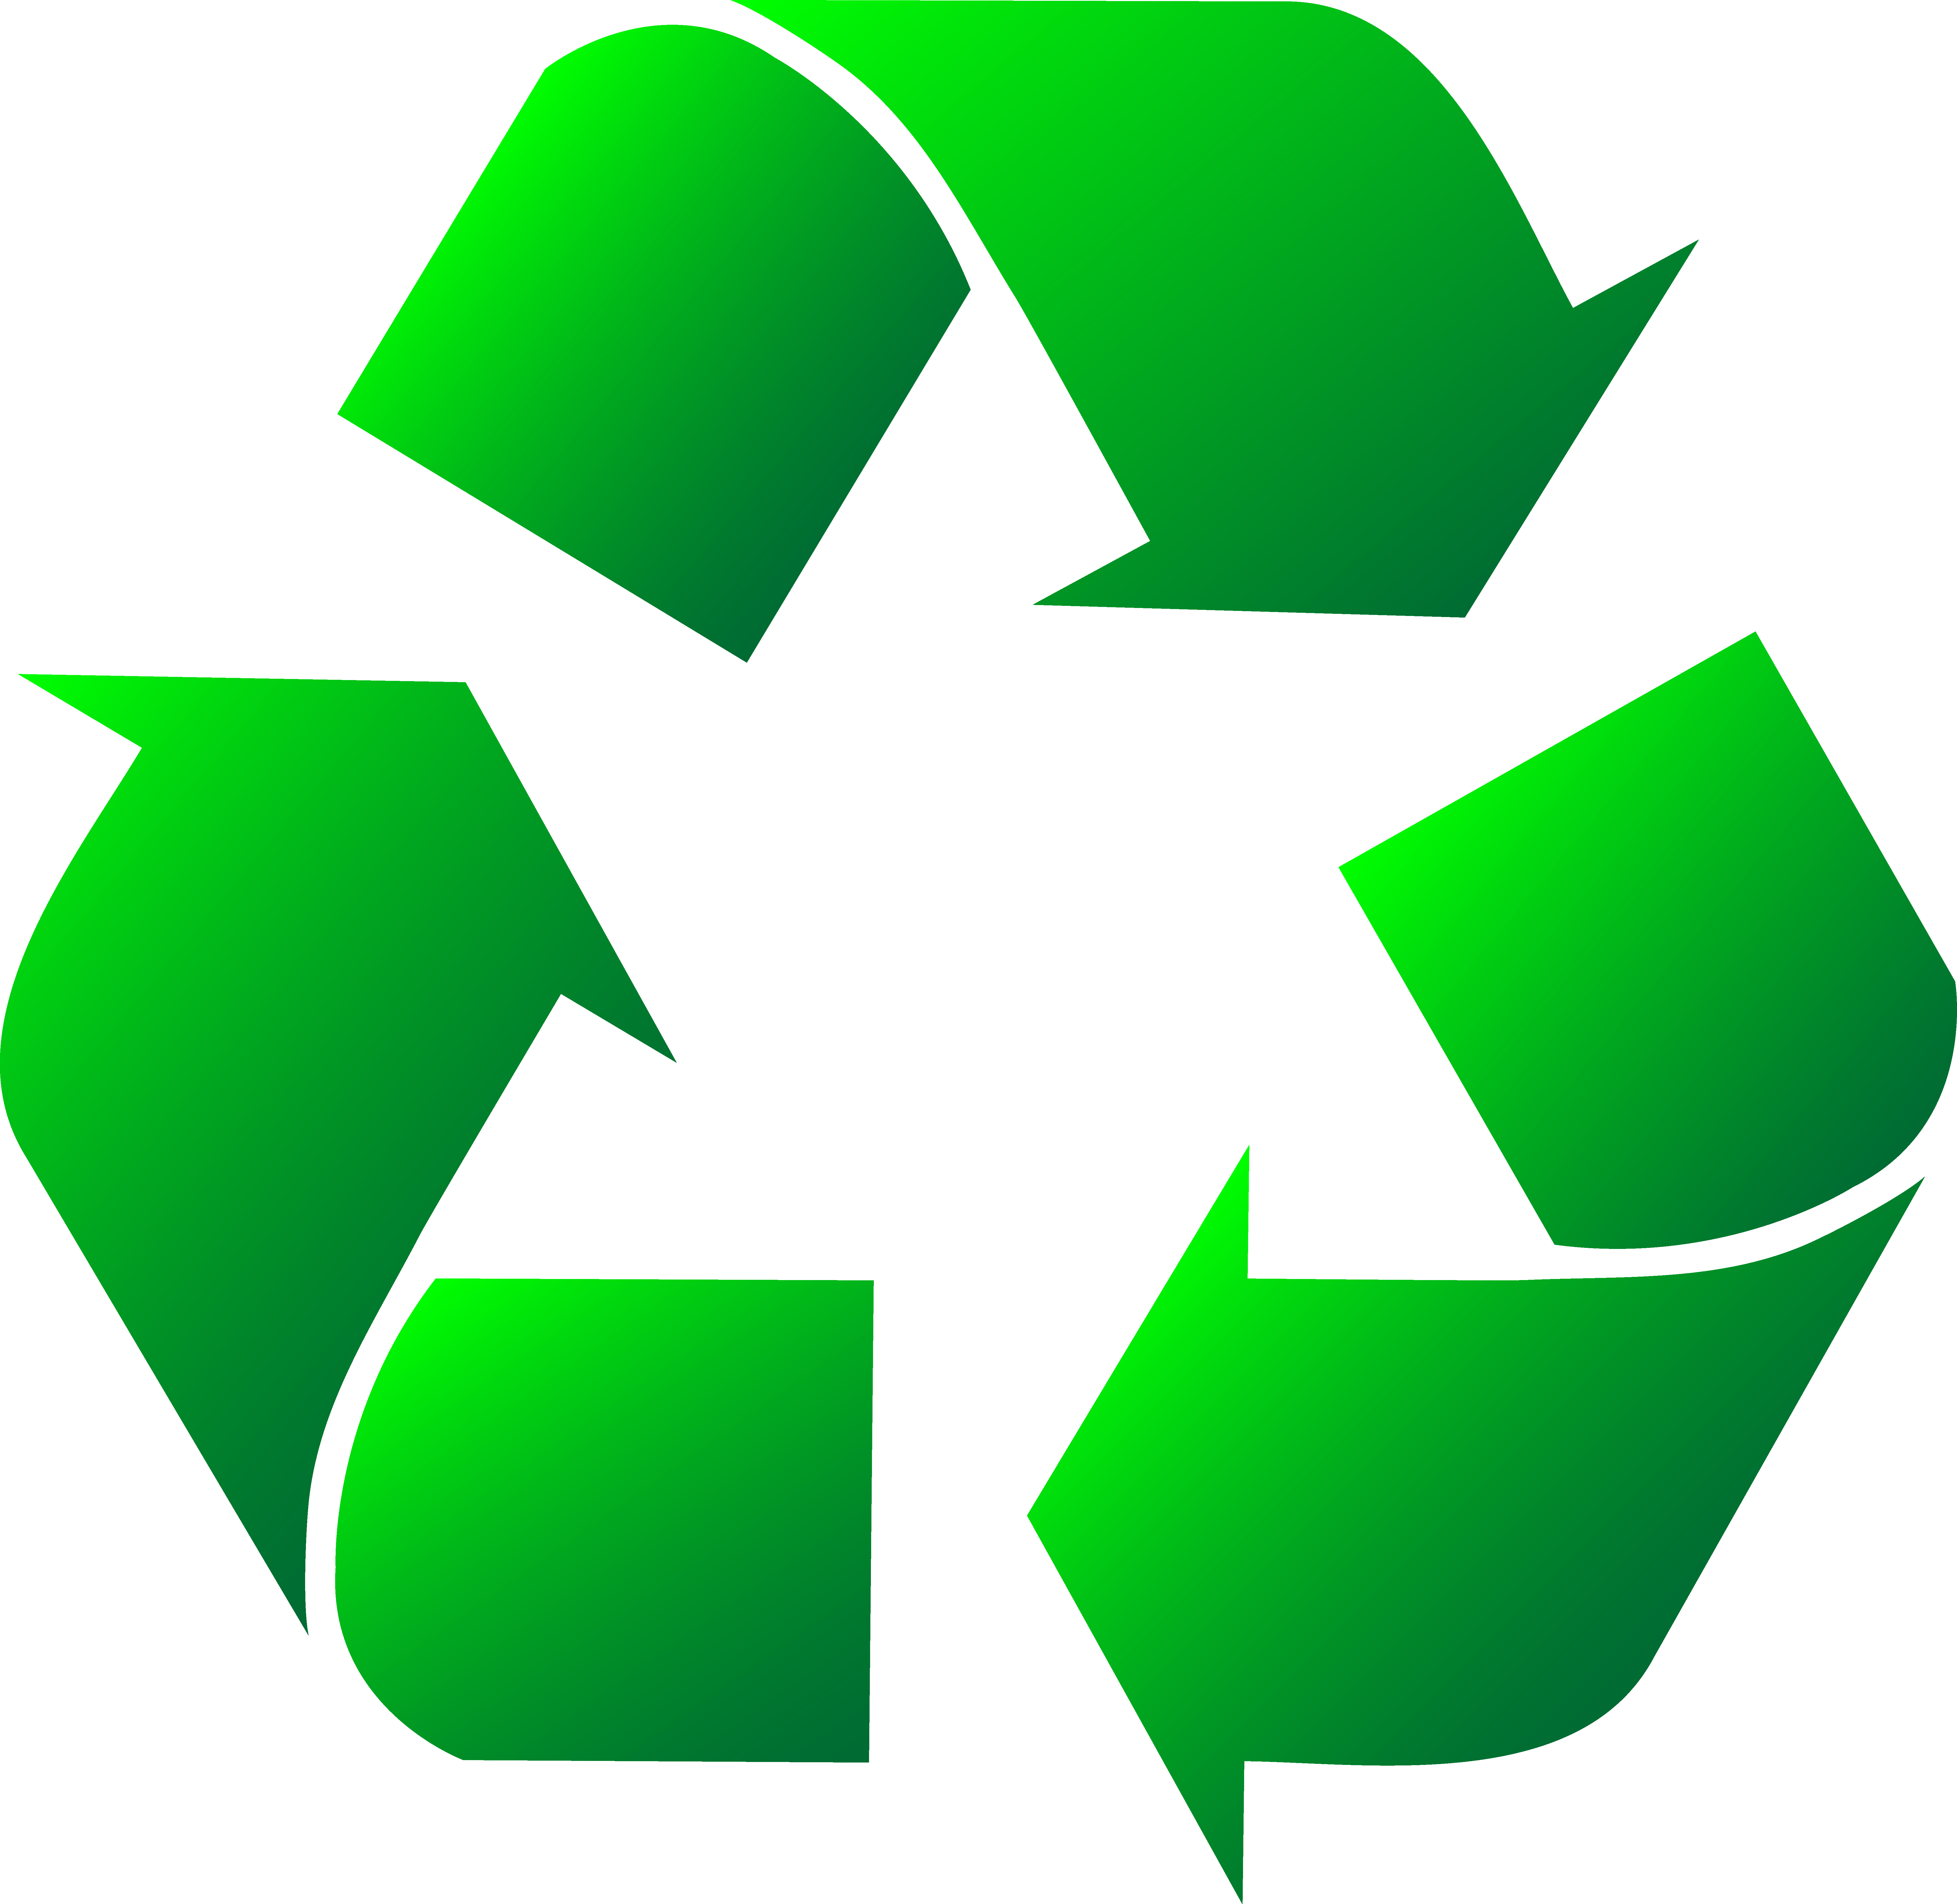 Free Recycle Picture, Download Free Clip Art, Free Clip Art.